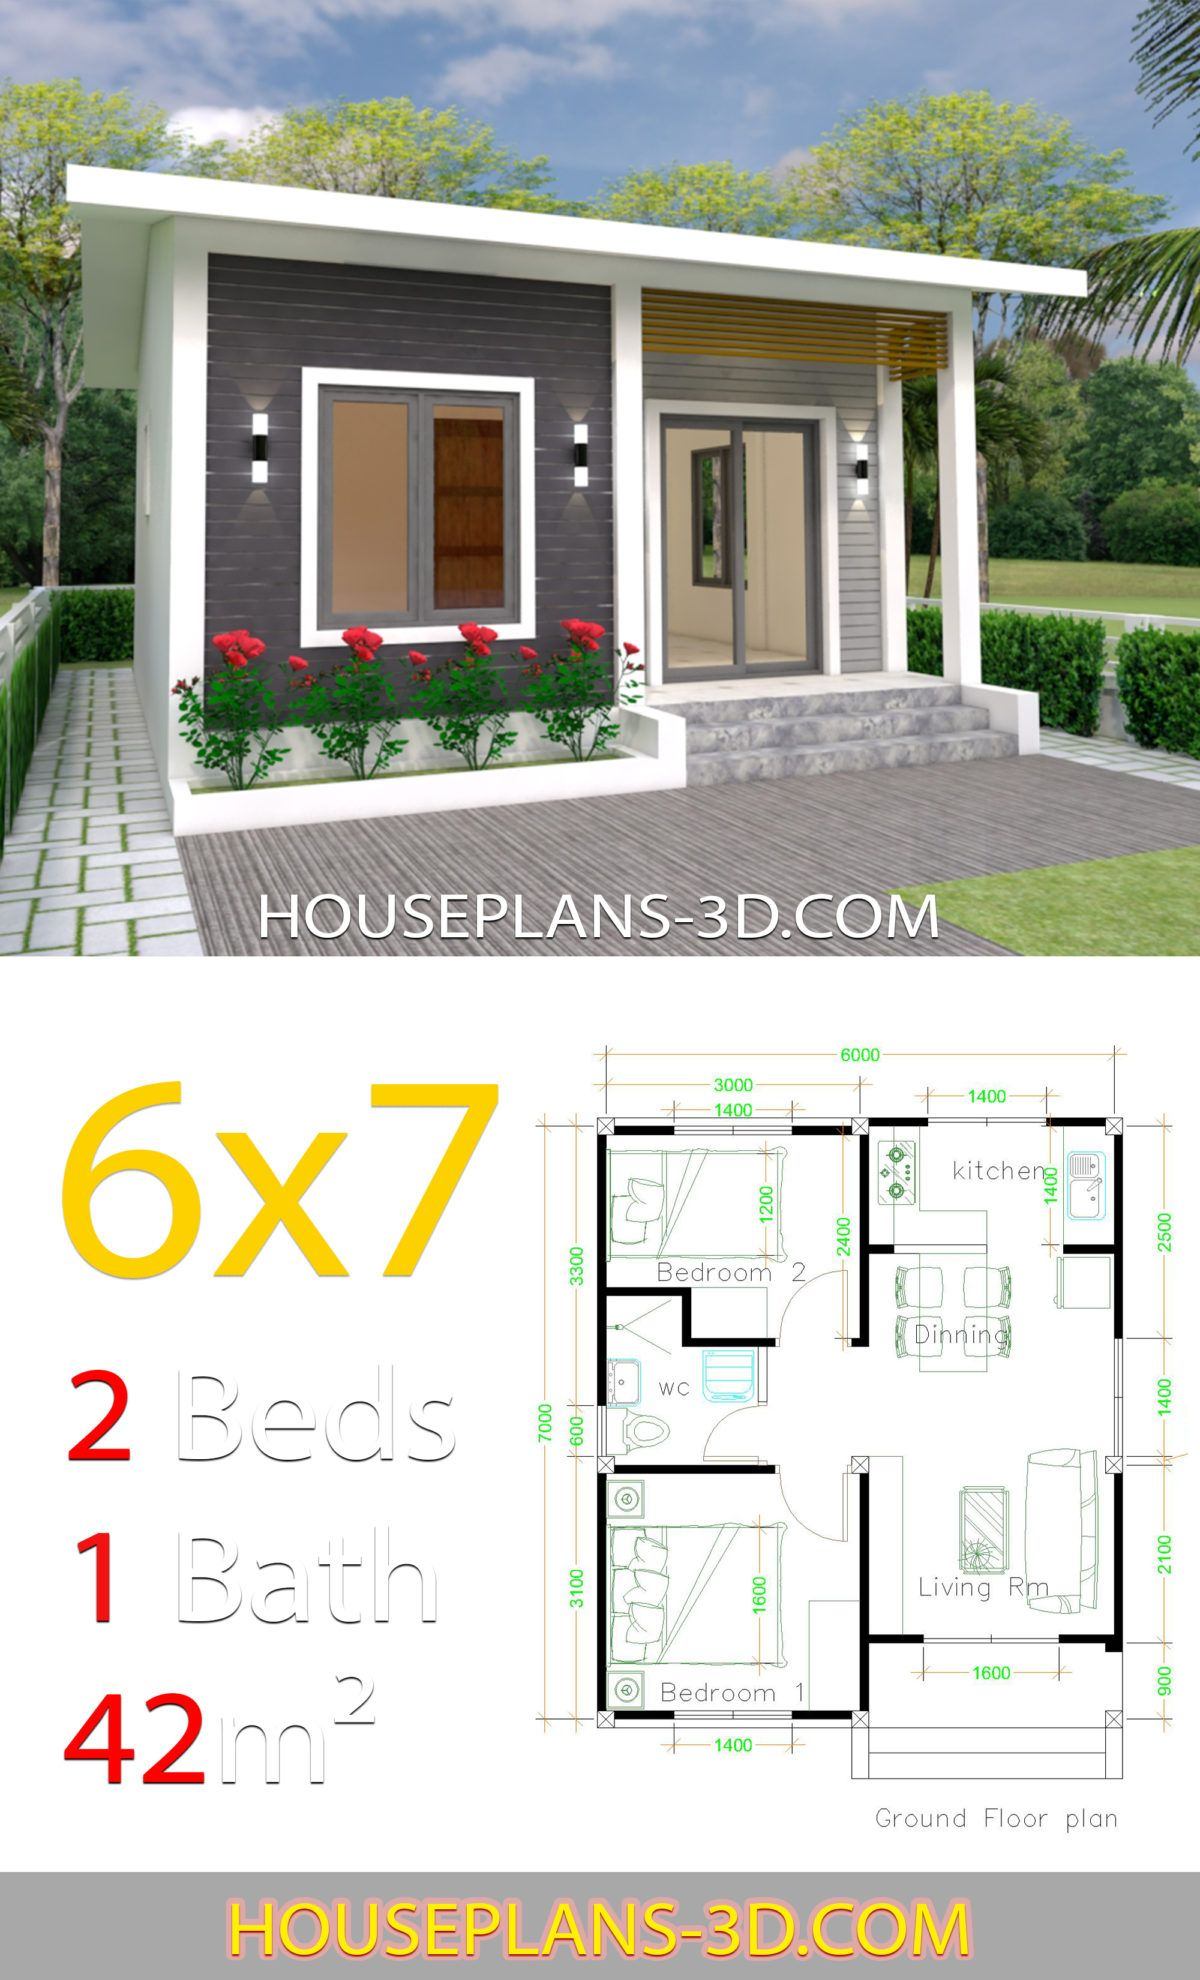 House Design 6x7 With 2 Bedrooms House Plans 3d In 2020 House Plans Small House Design Plans Simple House Design